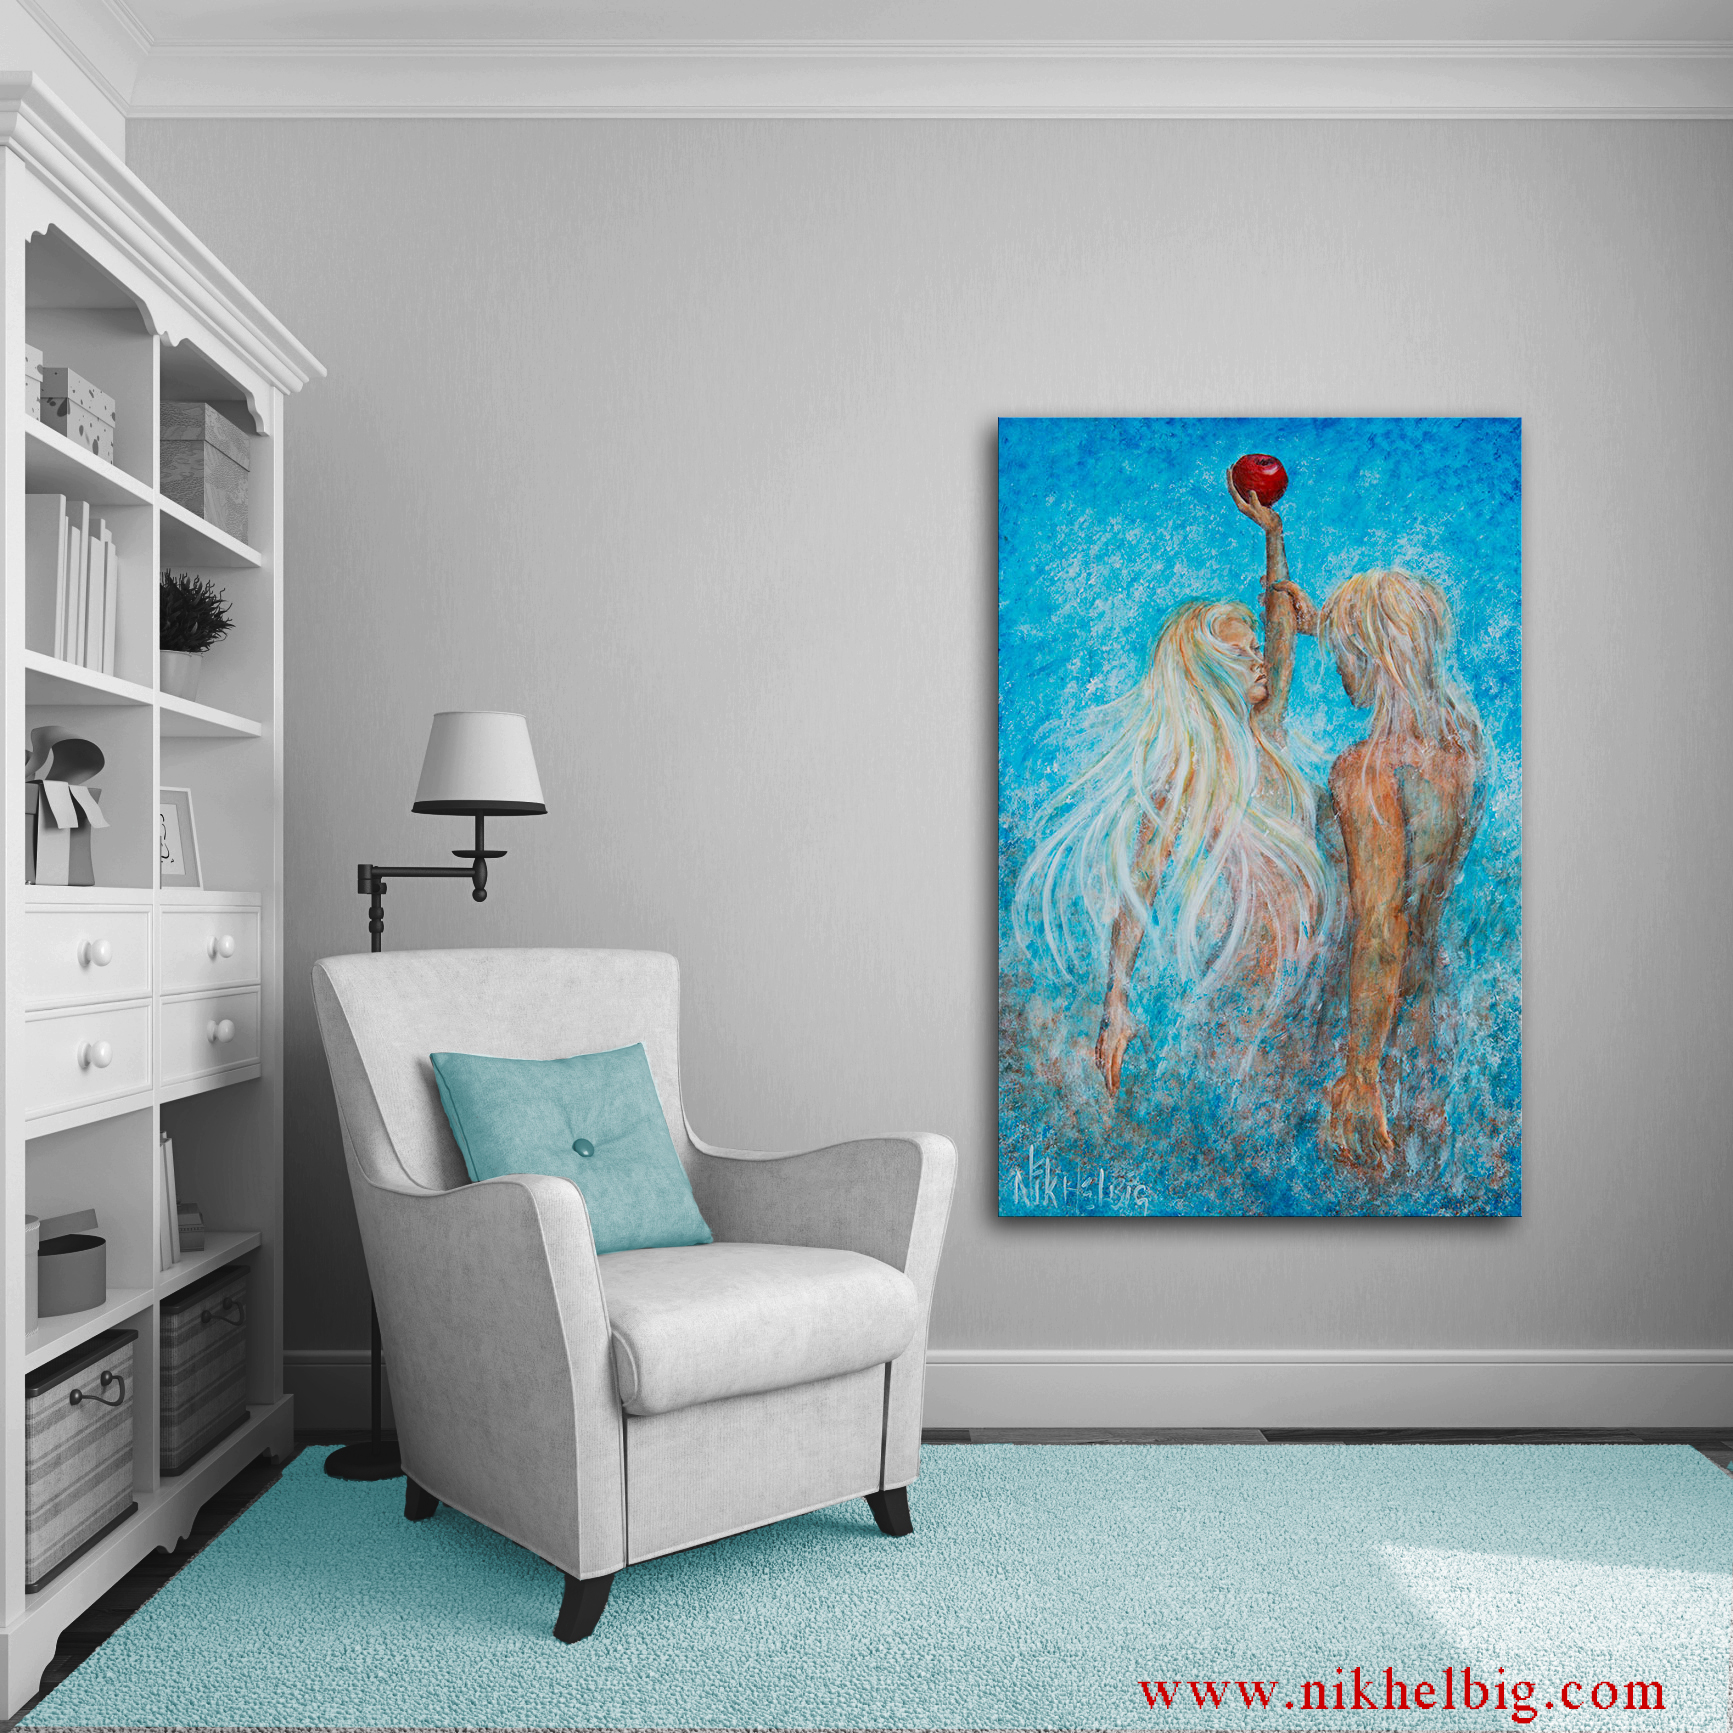 paintings of adam and eve